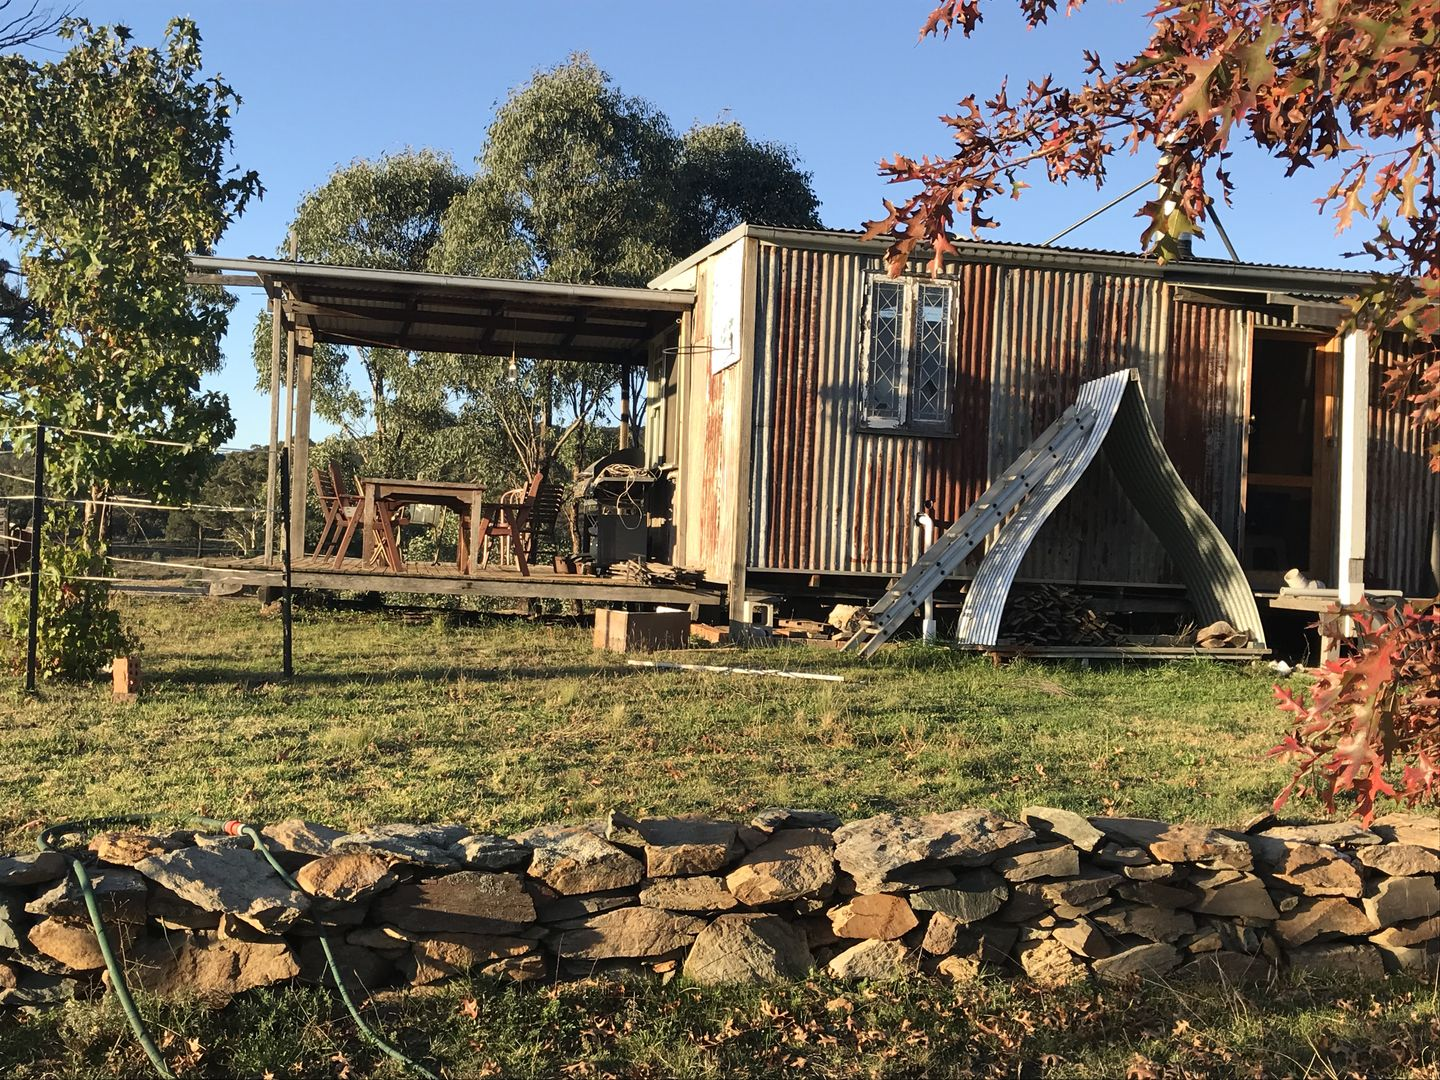 1839 O'Connell Road, Wisemans Creek NSW 2795, Image 2